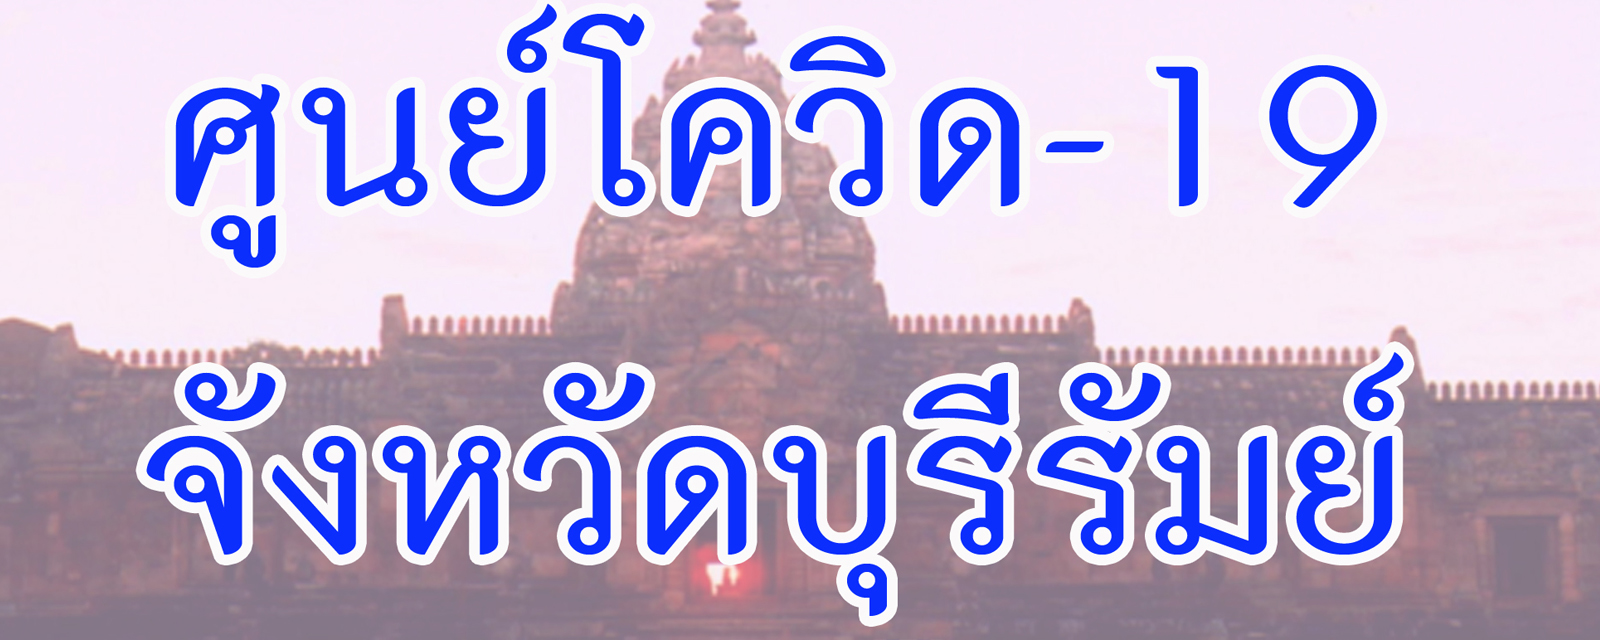 http://www.buriram.go.th/covid-19